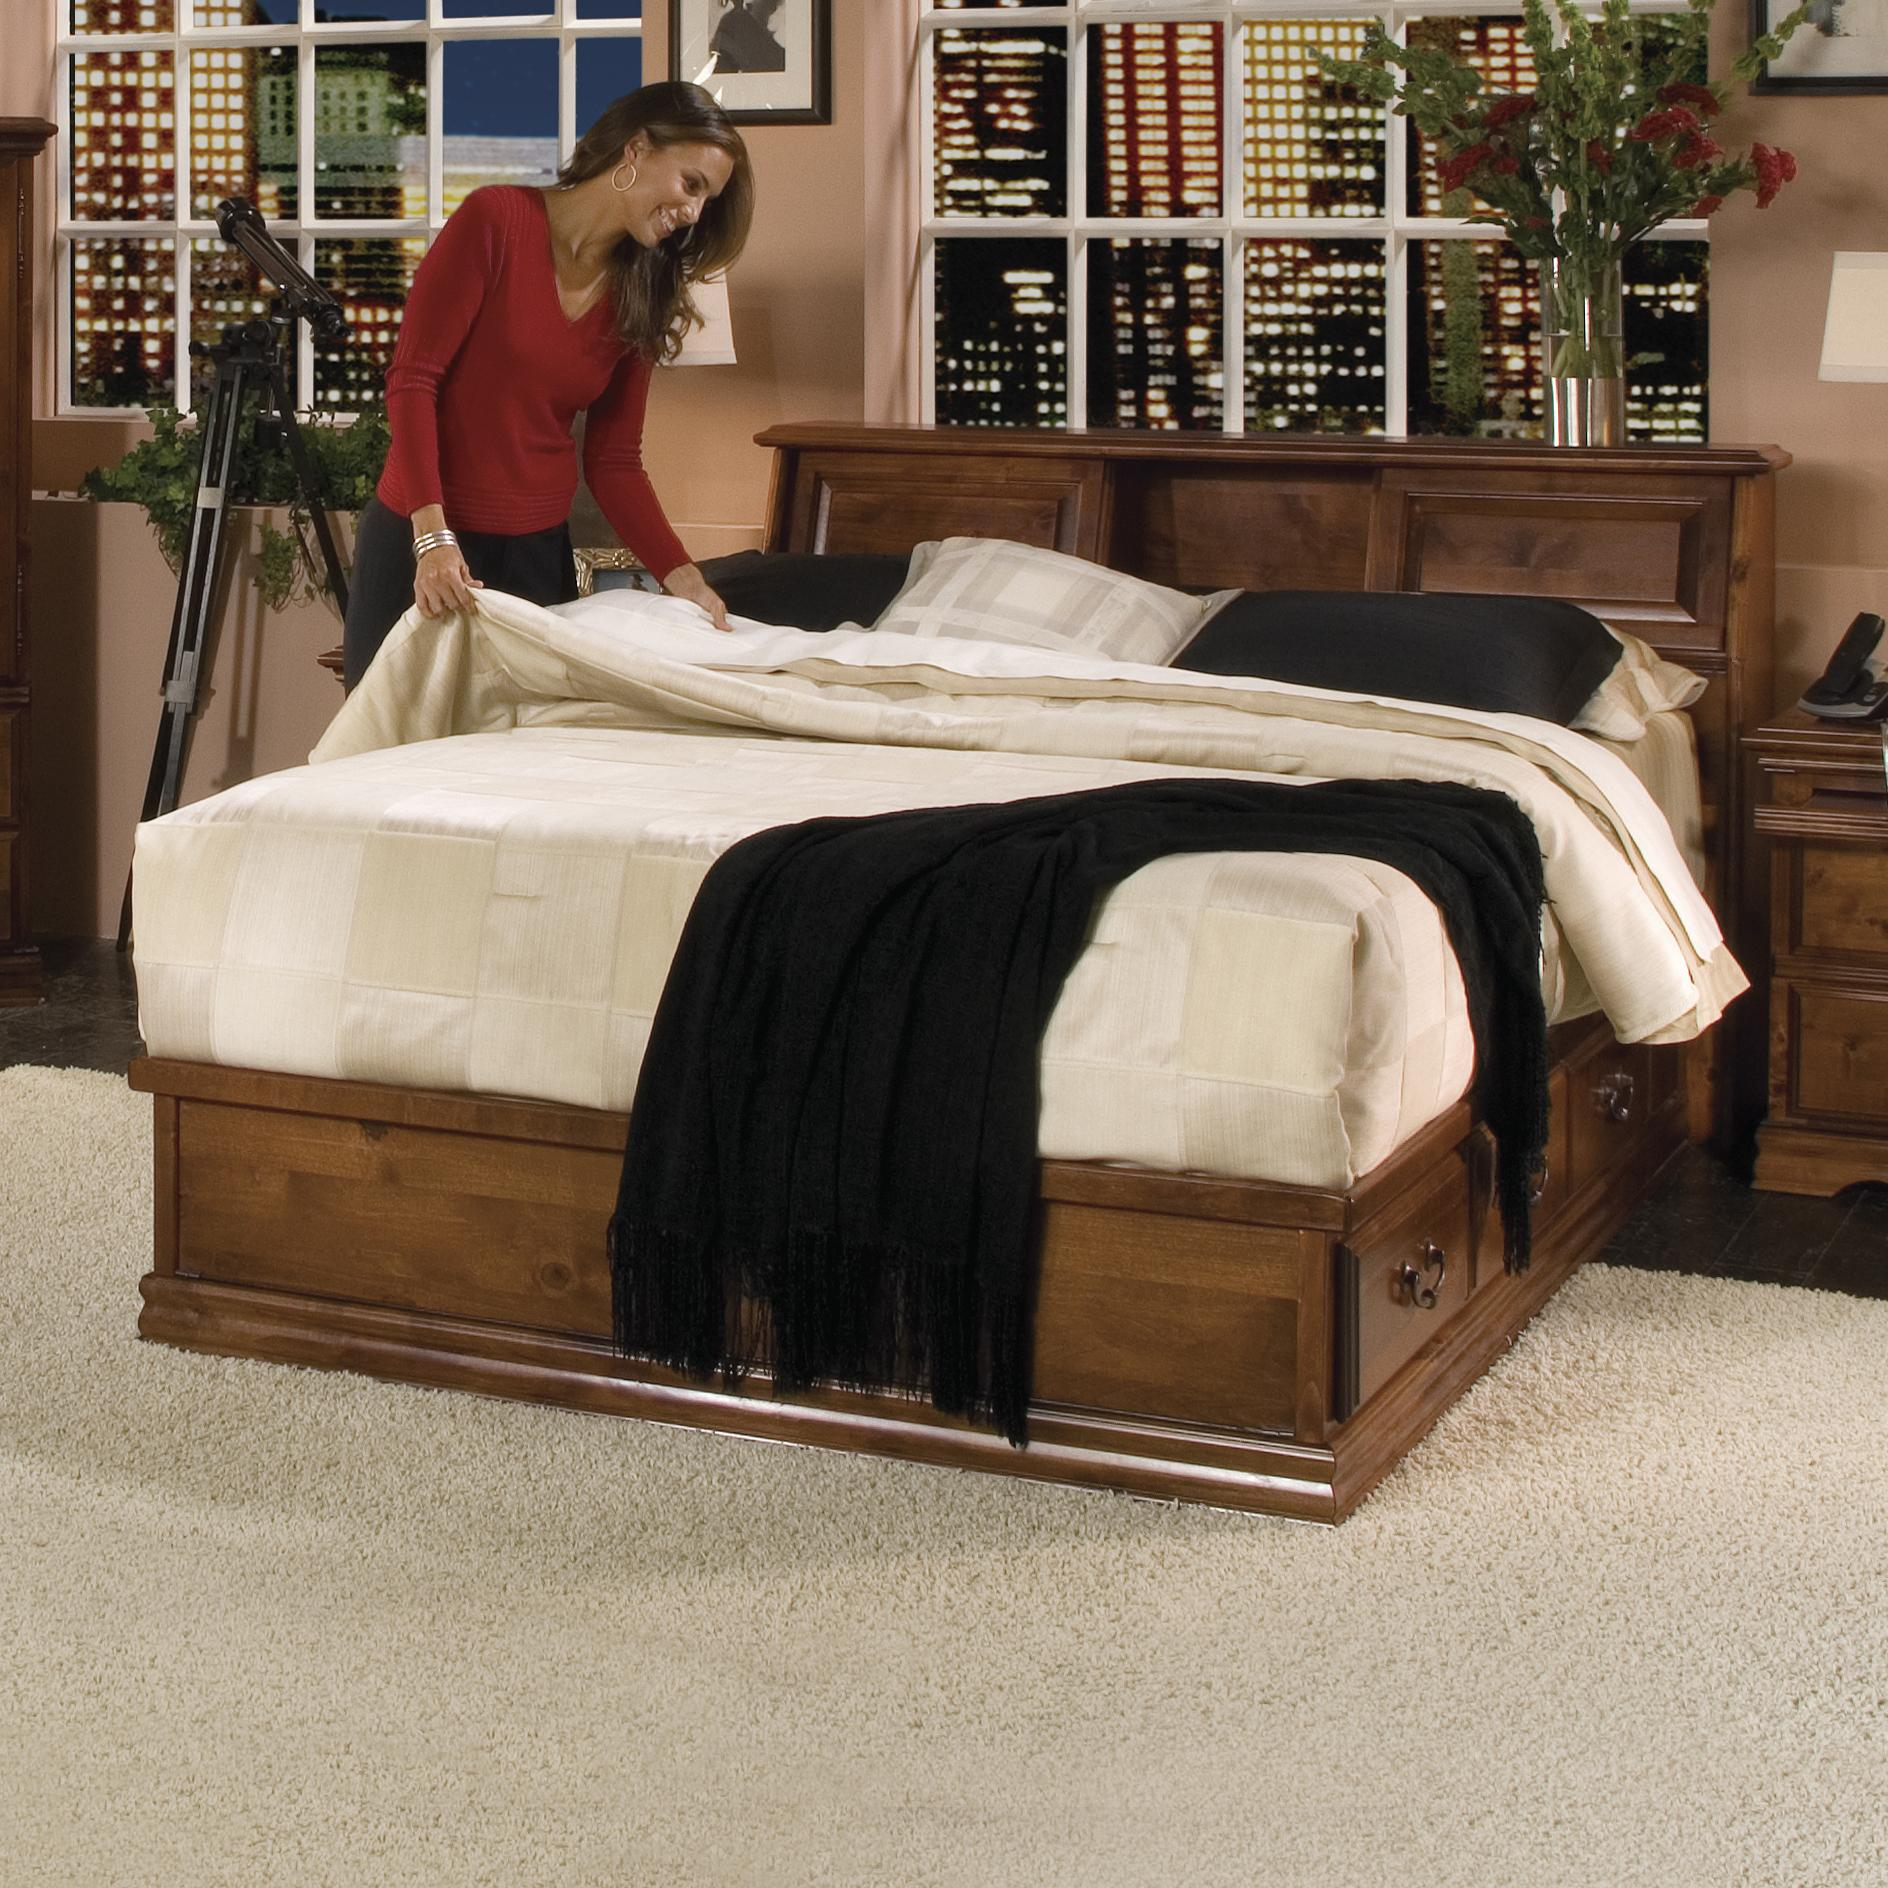 Furniture Traditions Alder Hill Queen Hamilton Headboard Bed with Storage - Item Number: A600+A611